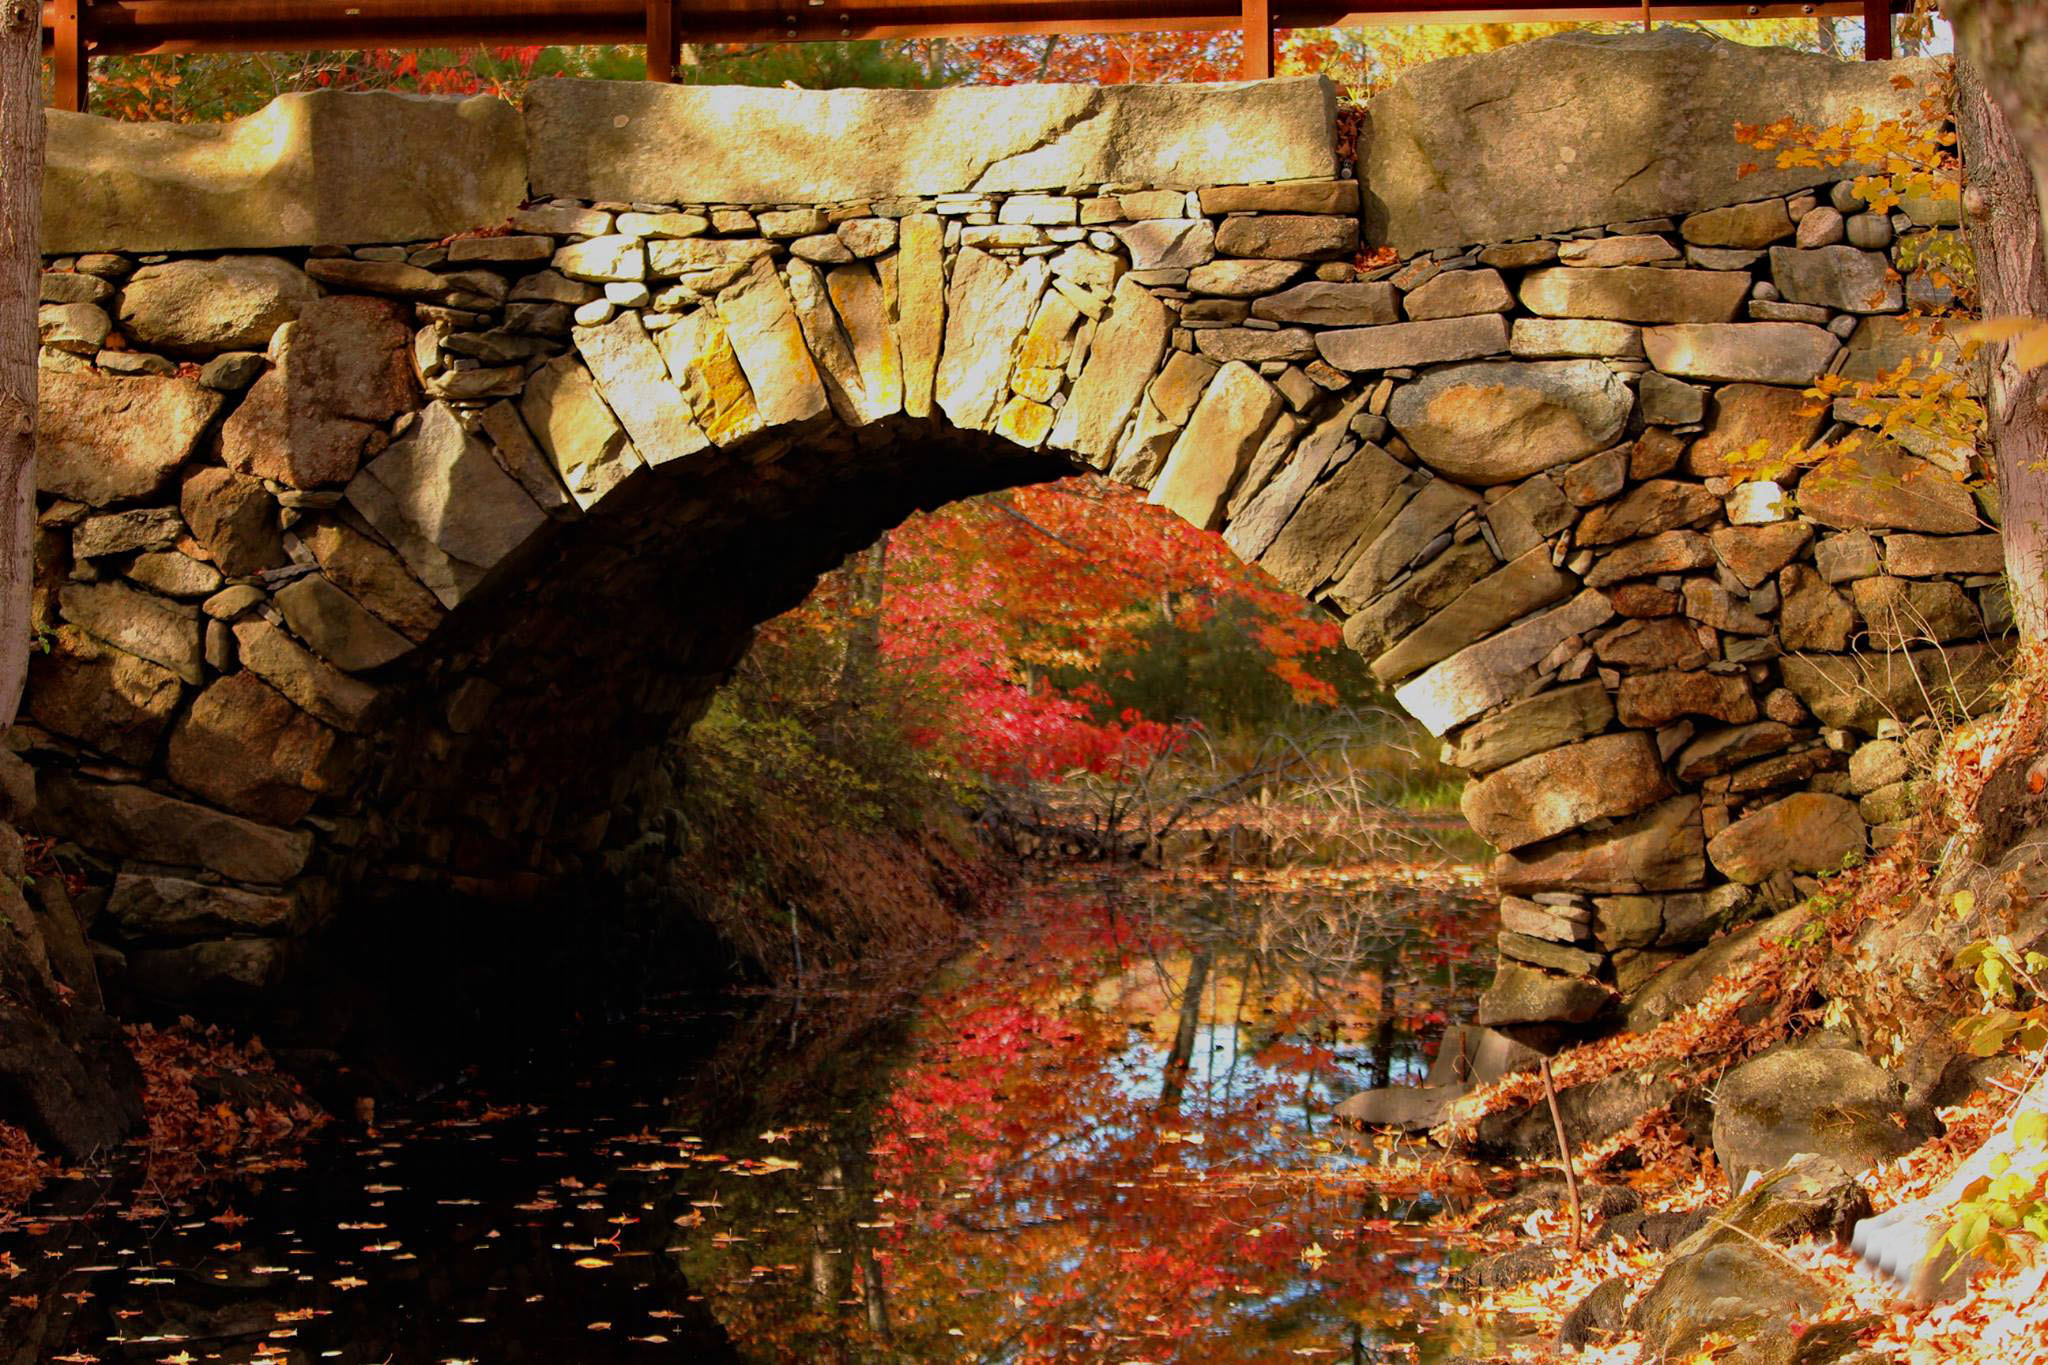 Sandee Brackett's photo of the Arch Bridge in Bristol Mills received the most votes to become the 11th monthly winner of the #LCNme365 photo contest. Brackett will receive a $50 gift certificate to a local business from Damariscotta Bank & Trust, the sponsor of the November contest.